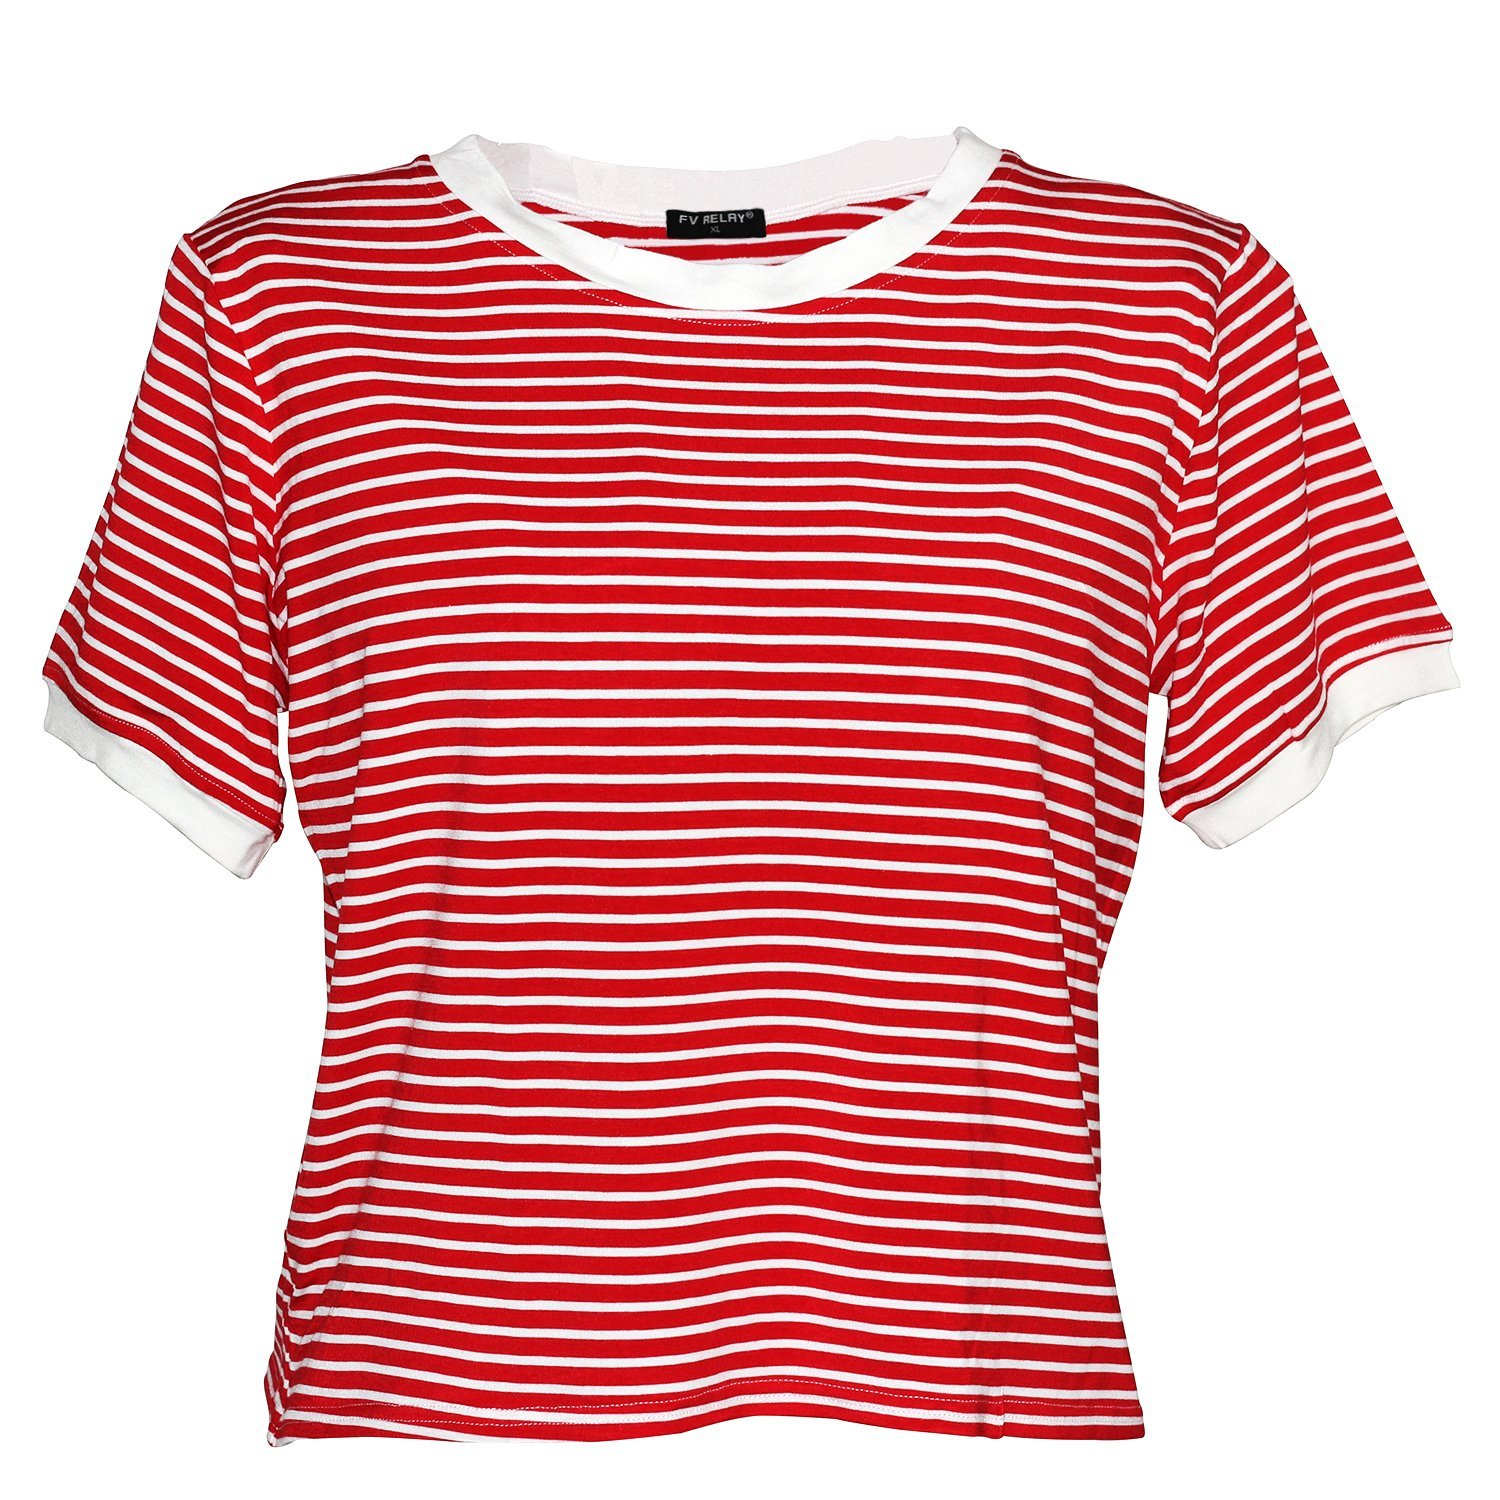 1940s Blouses, Shirts and Tops Fashion History Stripe Pattern Crop Top Short Sleeve O-Neck T-Shirt Loose Tops $13.99 AT vintagedancer.com